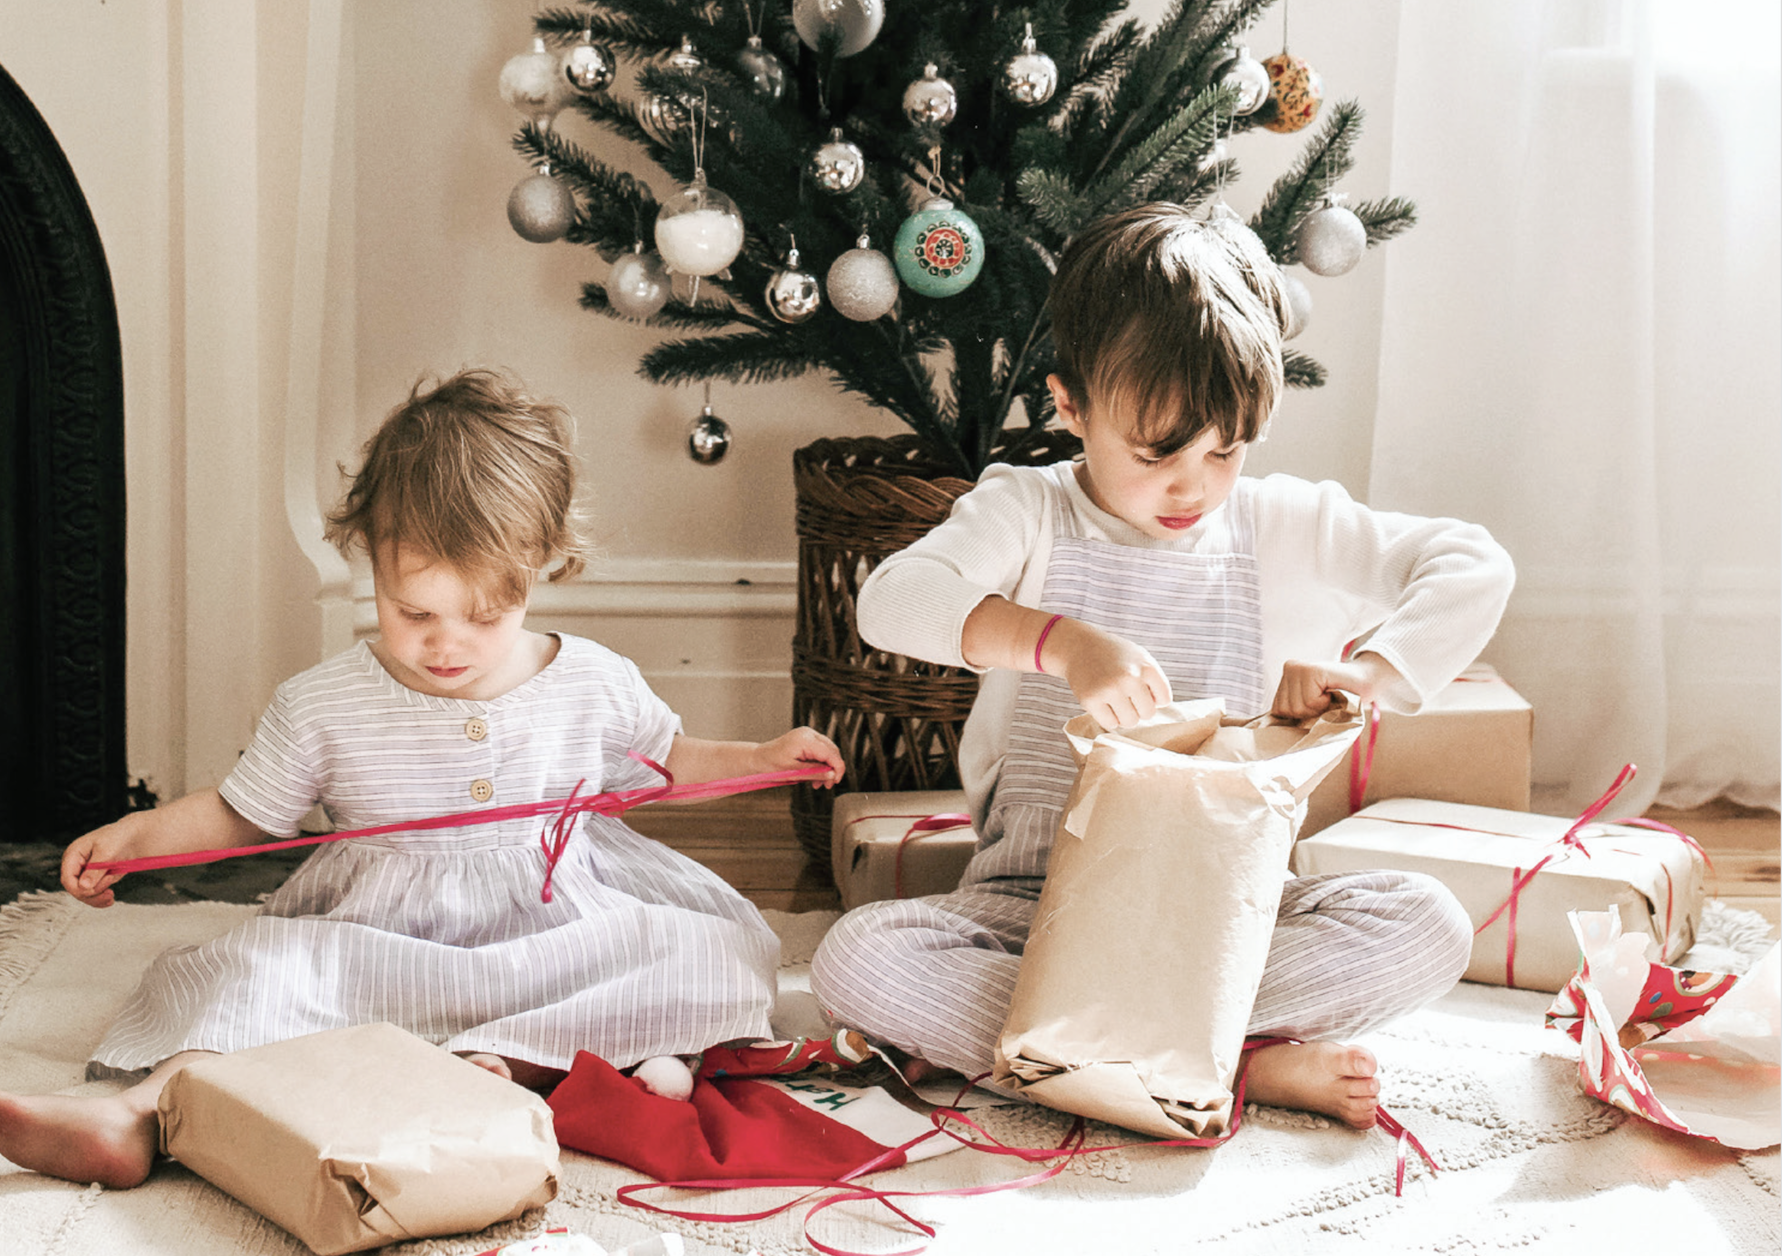 Danielle Symes: My kids are becoming numb to Christmas…